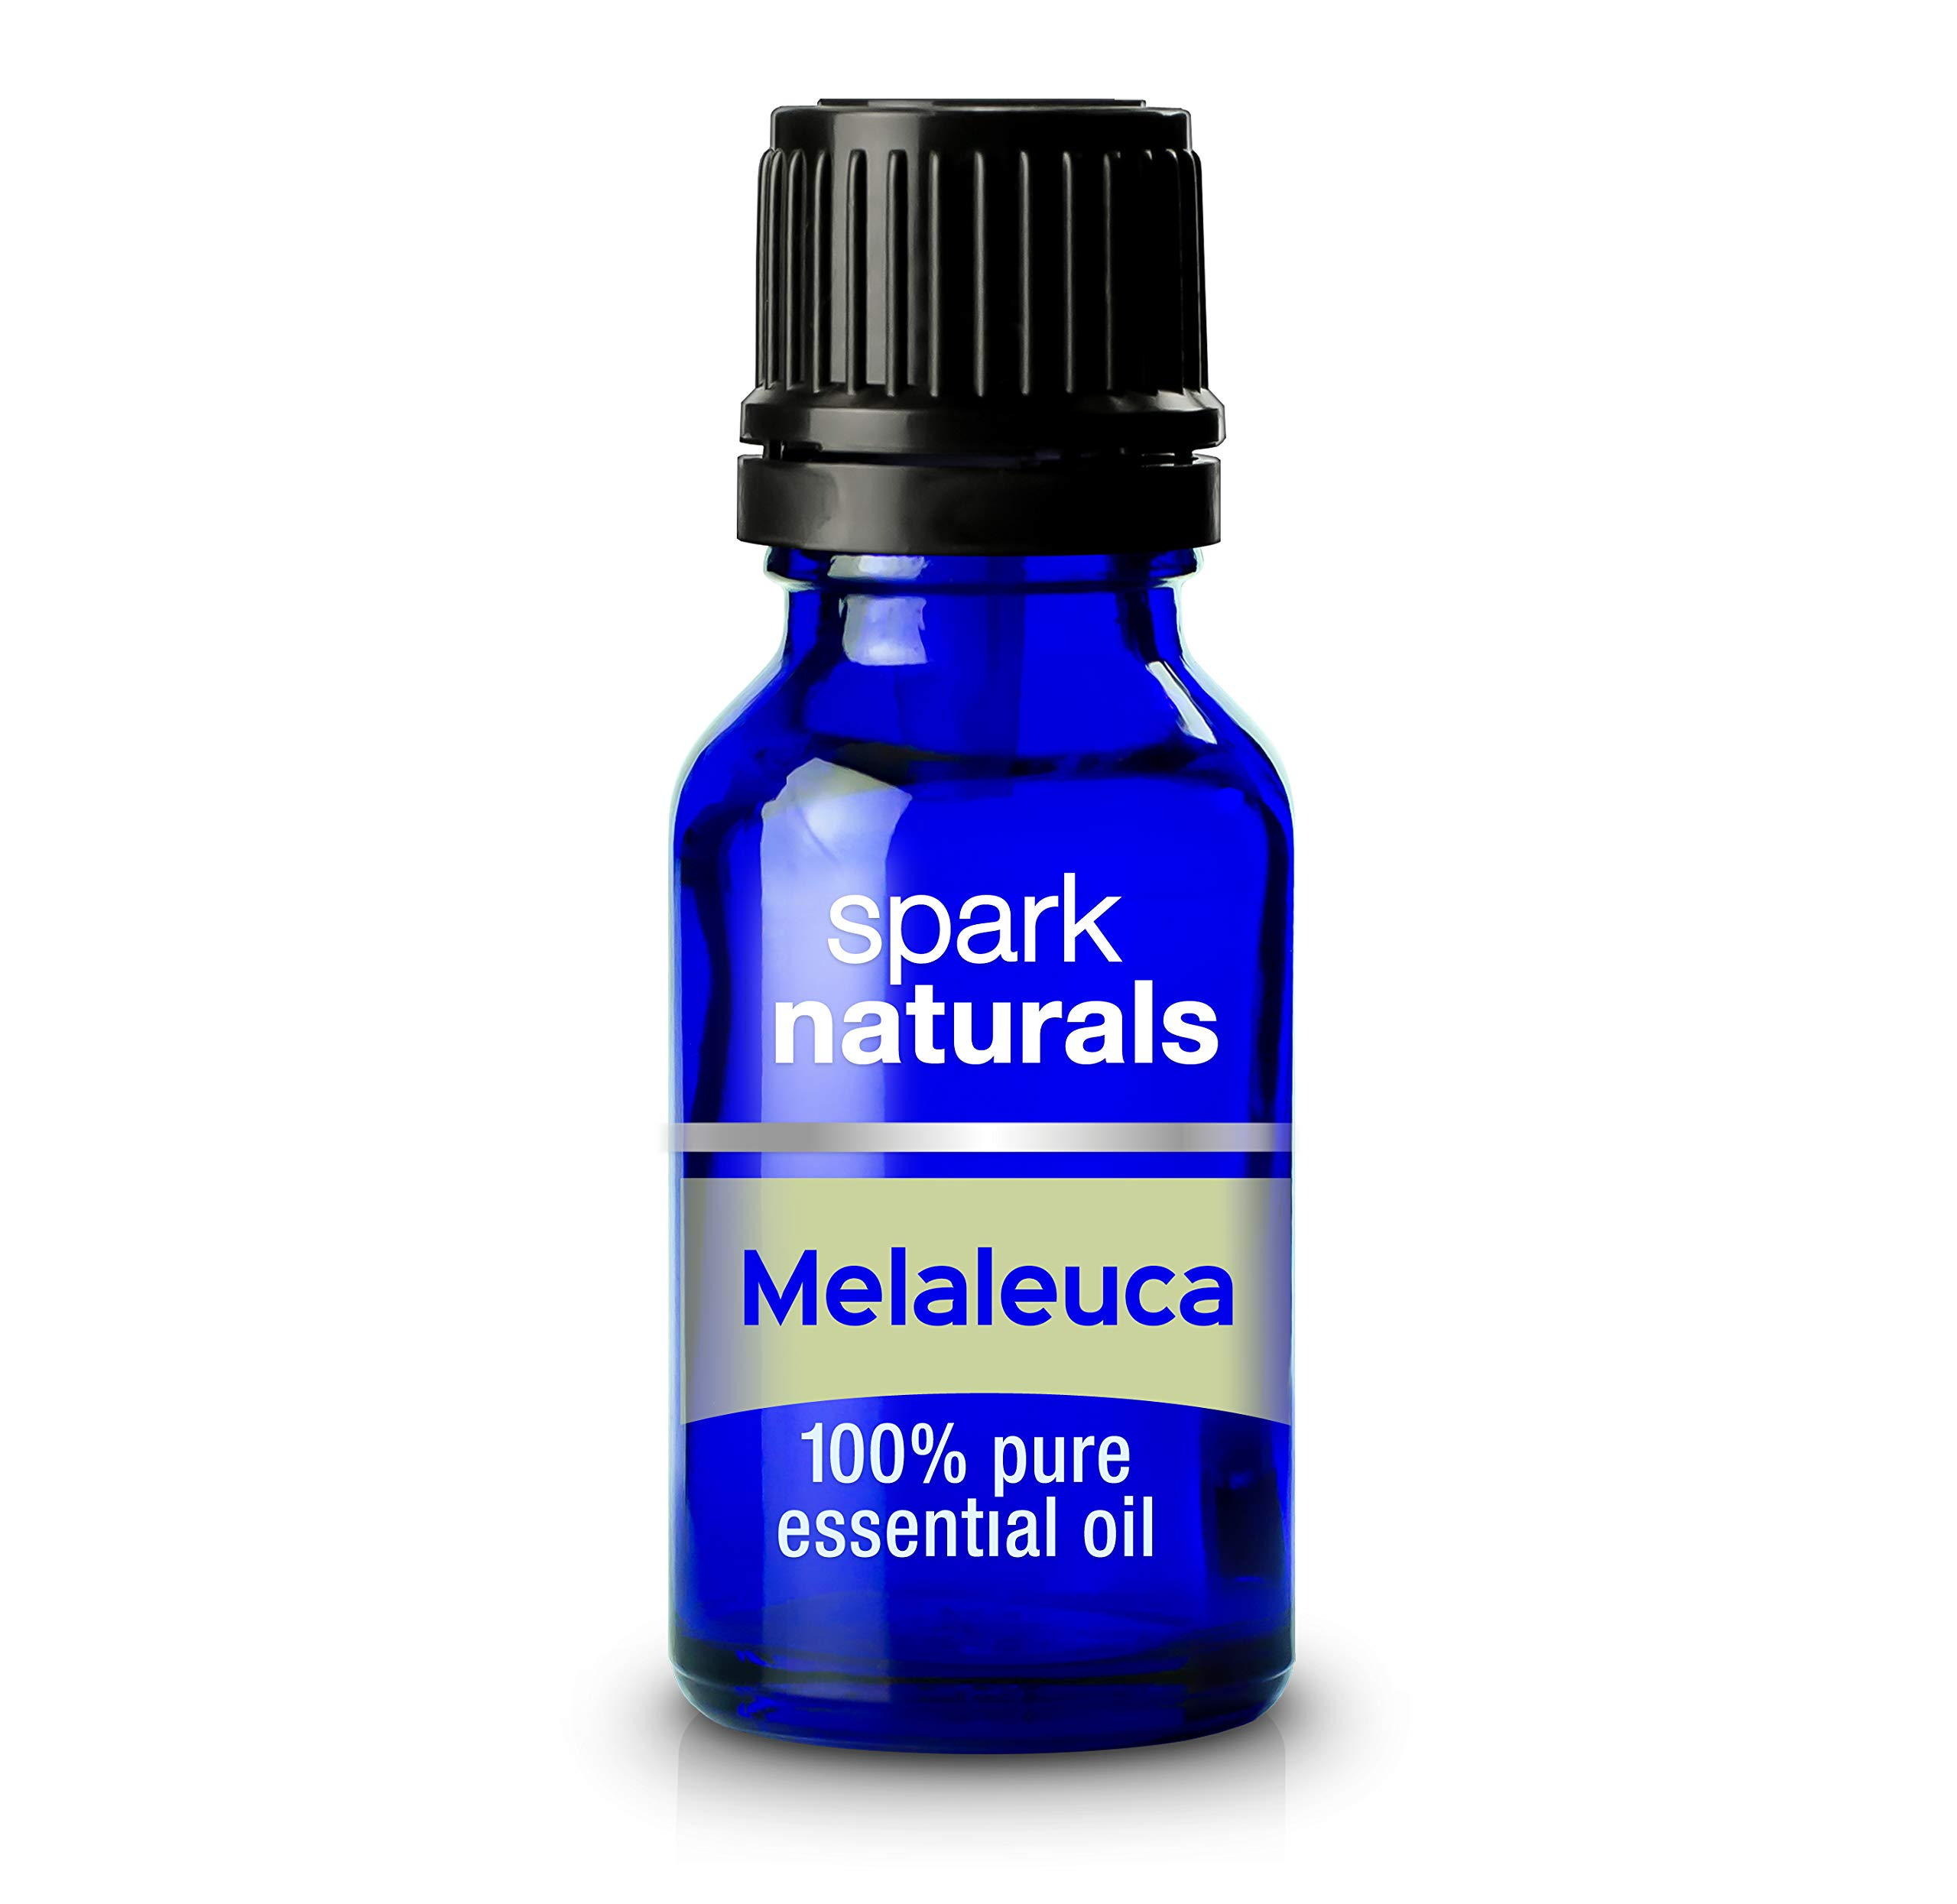 Melaleuca (Tea Tree) Essential Oil 15ml Spark Naturals - 100% Pure Therapeutic Grade, Highest Organic Quality, Aromatherapy, Natural Product- Diffuser & Humidifier Friendly by Spark Naturals